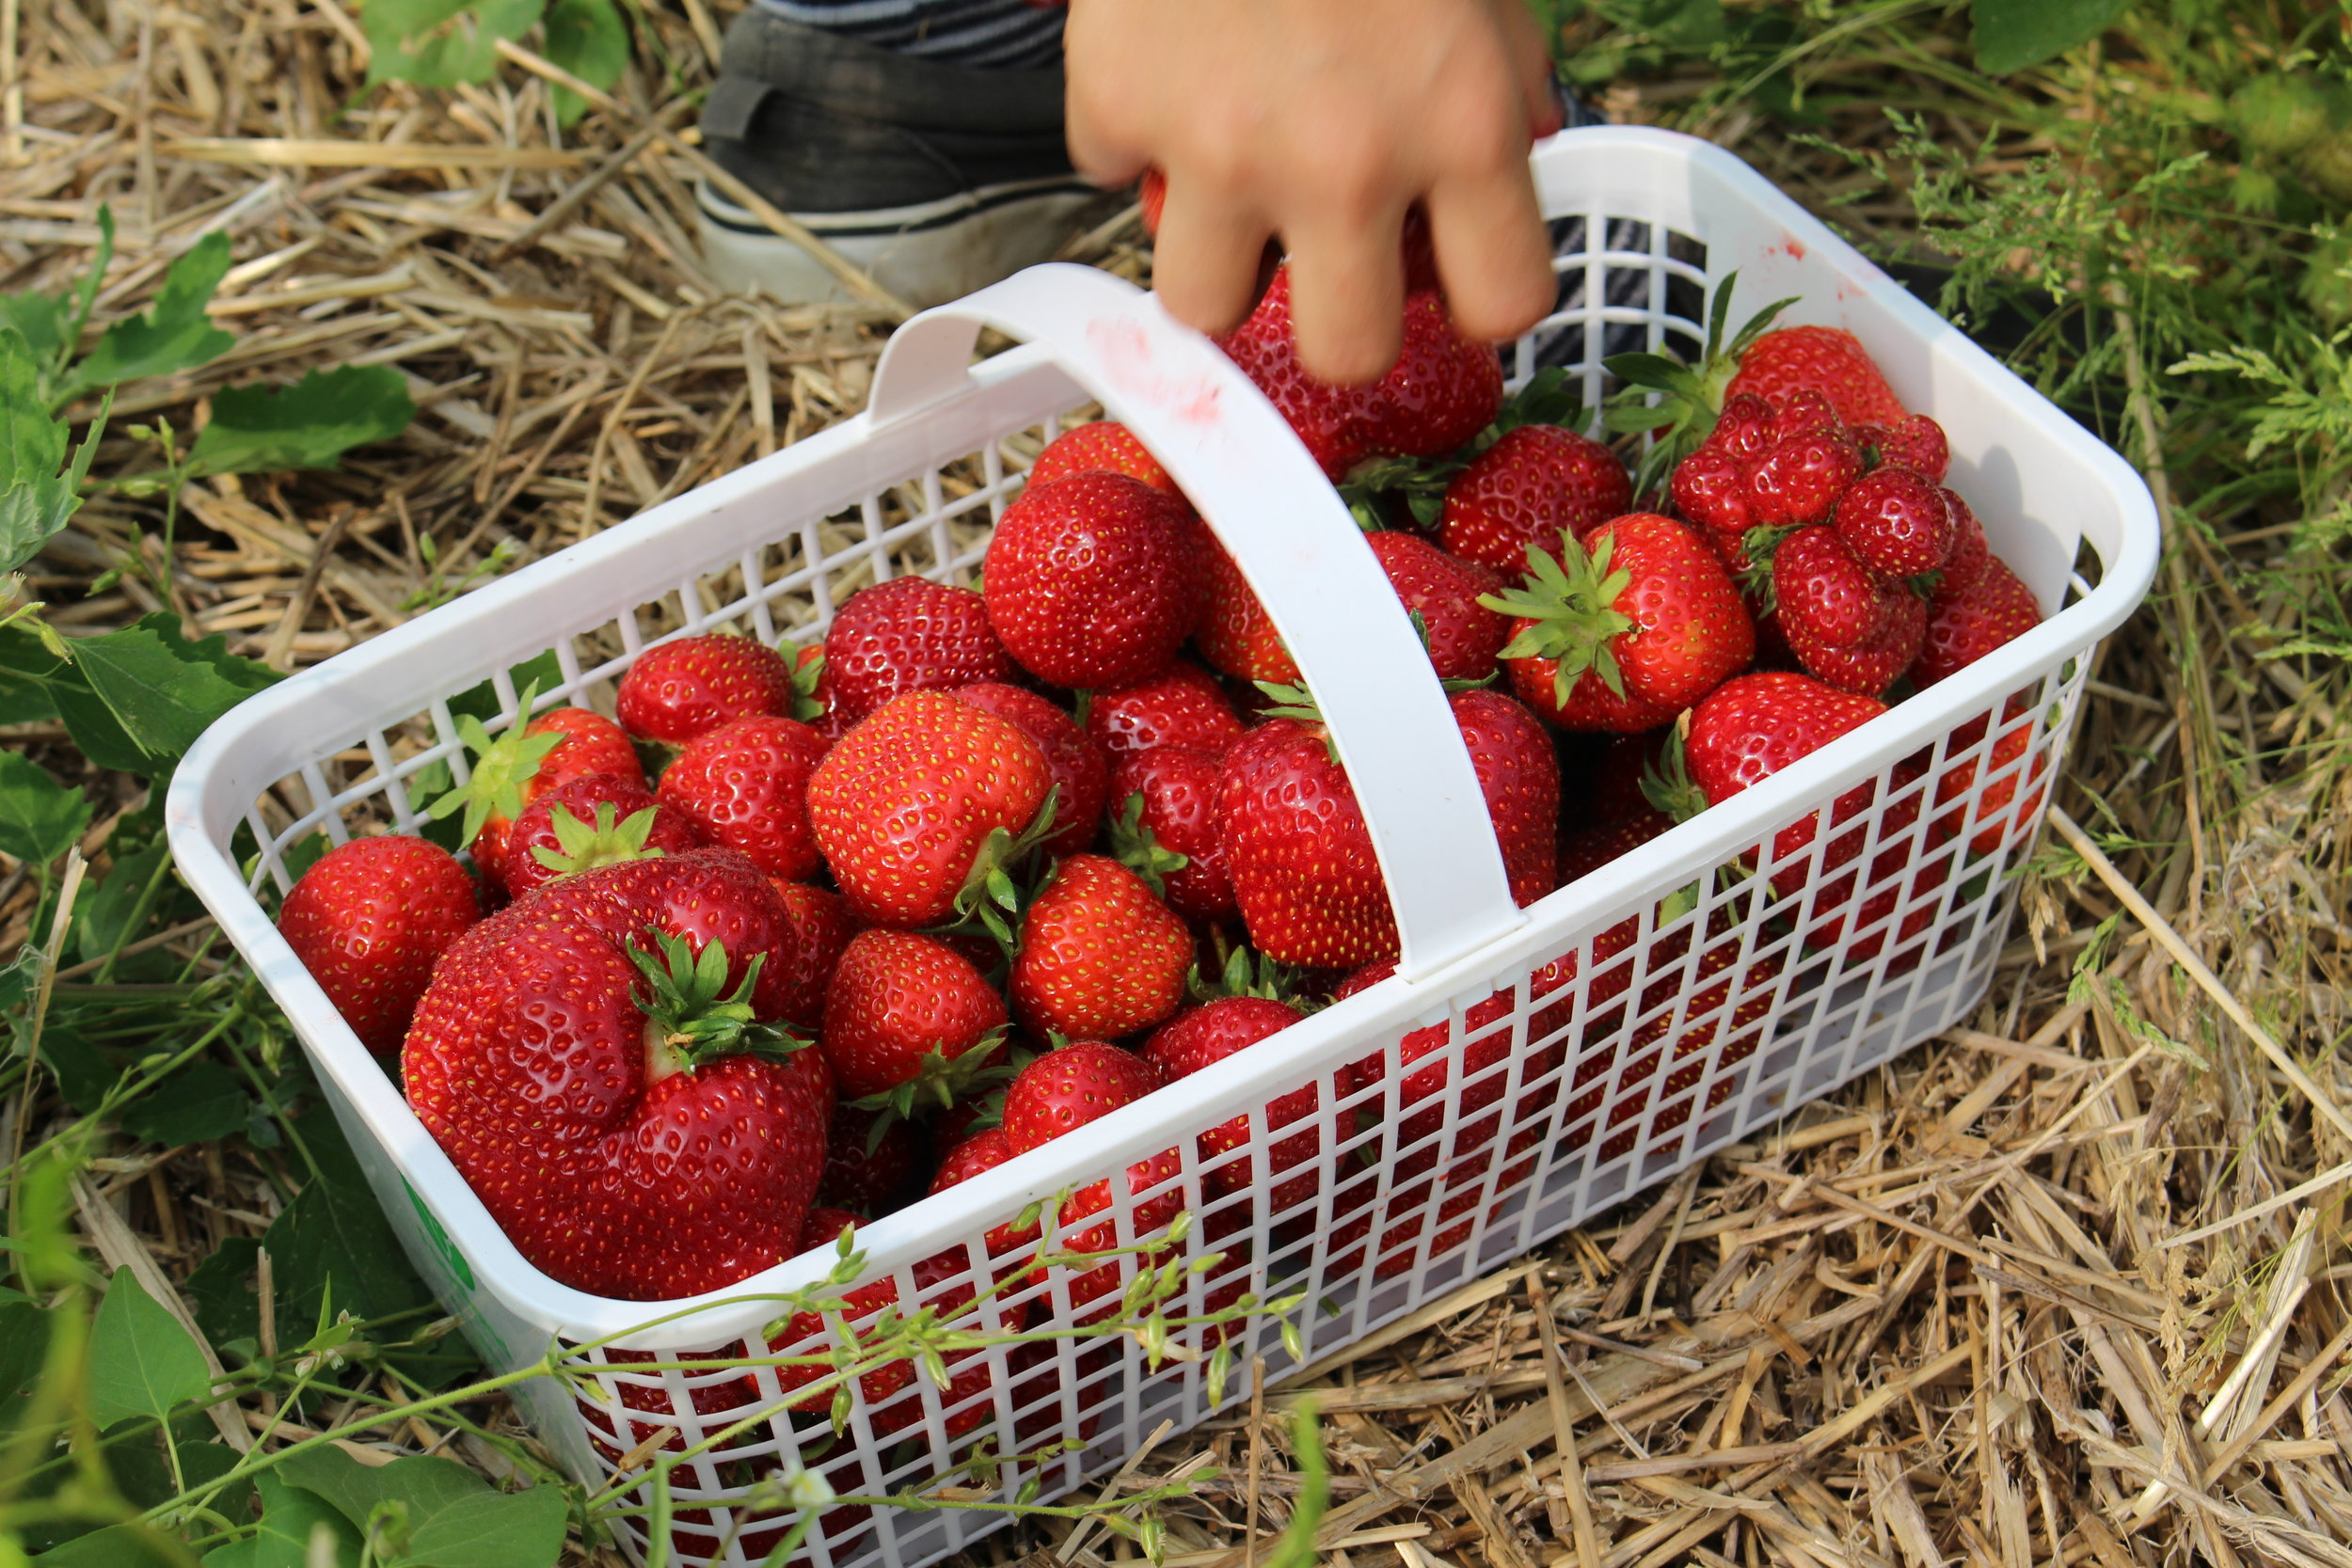 Strawberries   With a number of varieties in our crop, we are able to provide ripe, delicious berries right from day one of the season. Enjoy the tradition of berry picking with your family for seasons to come.